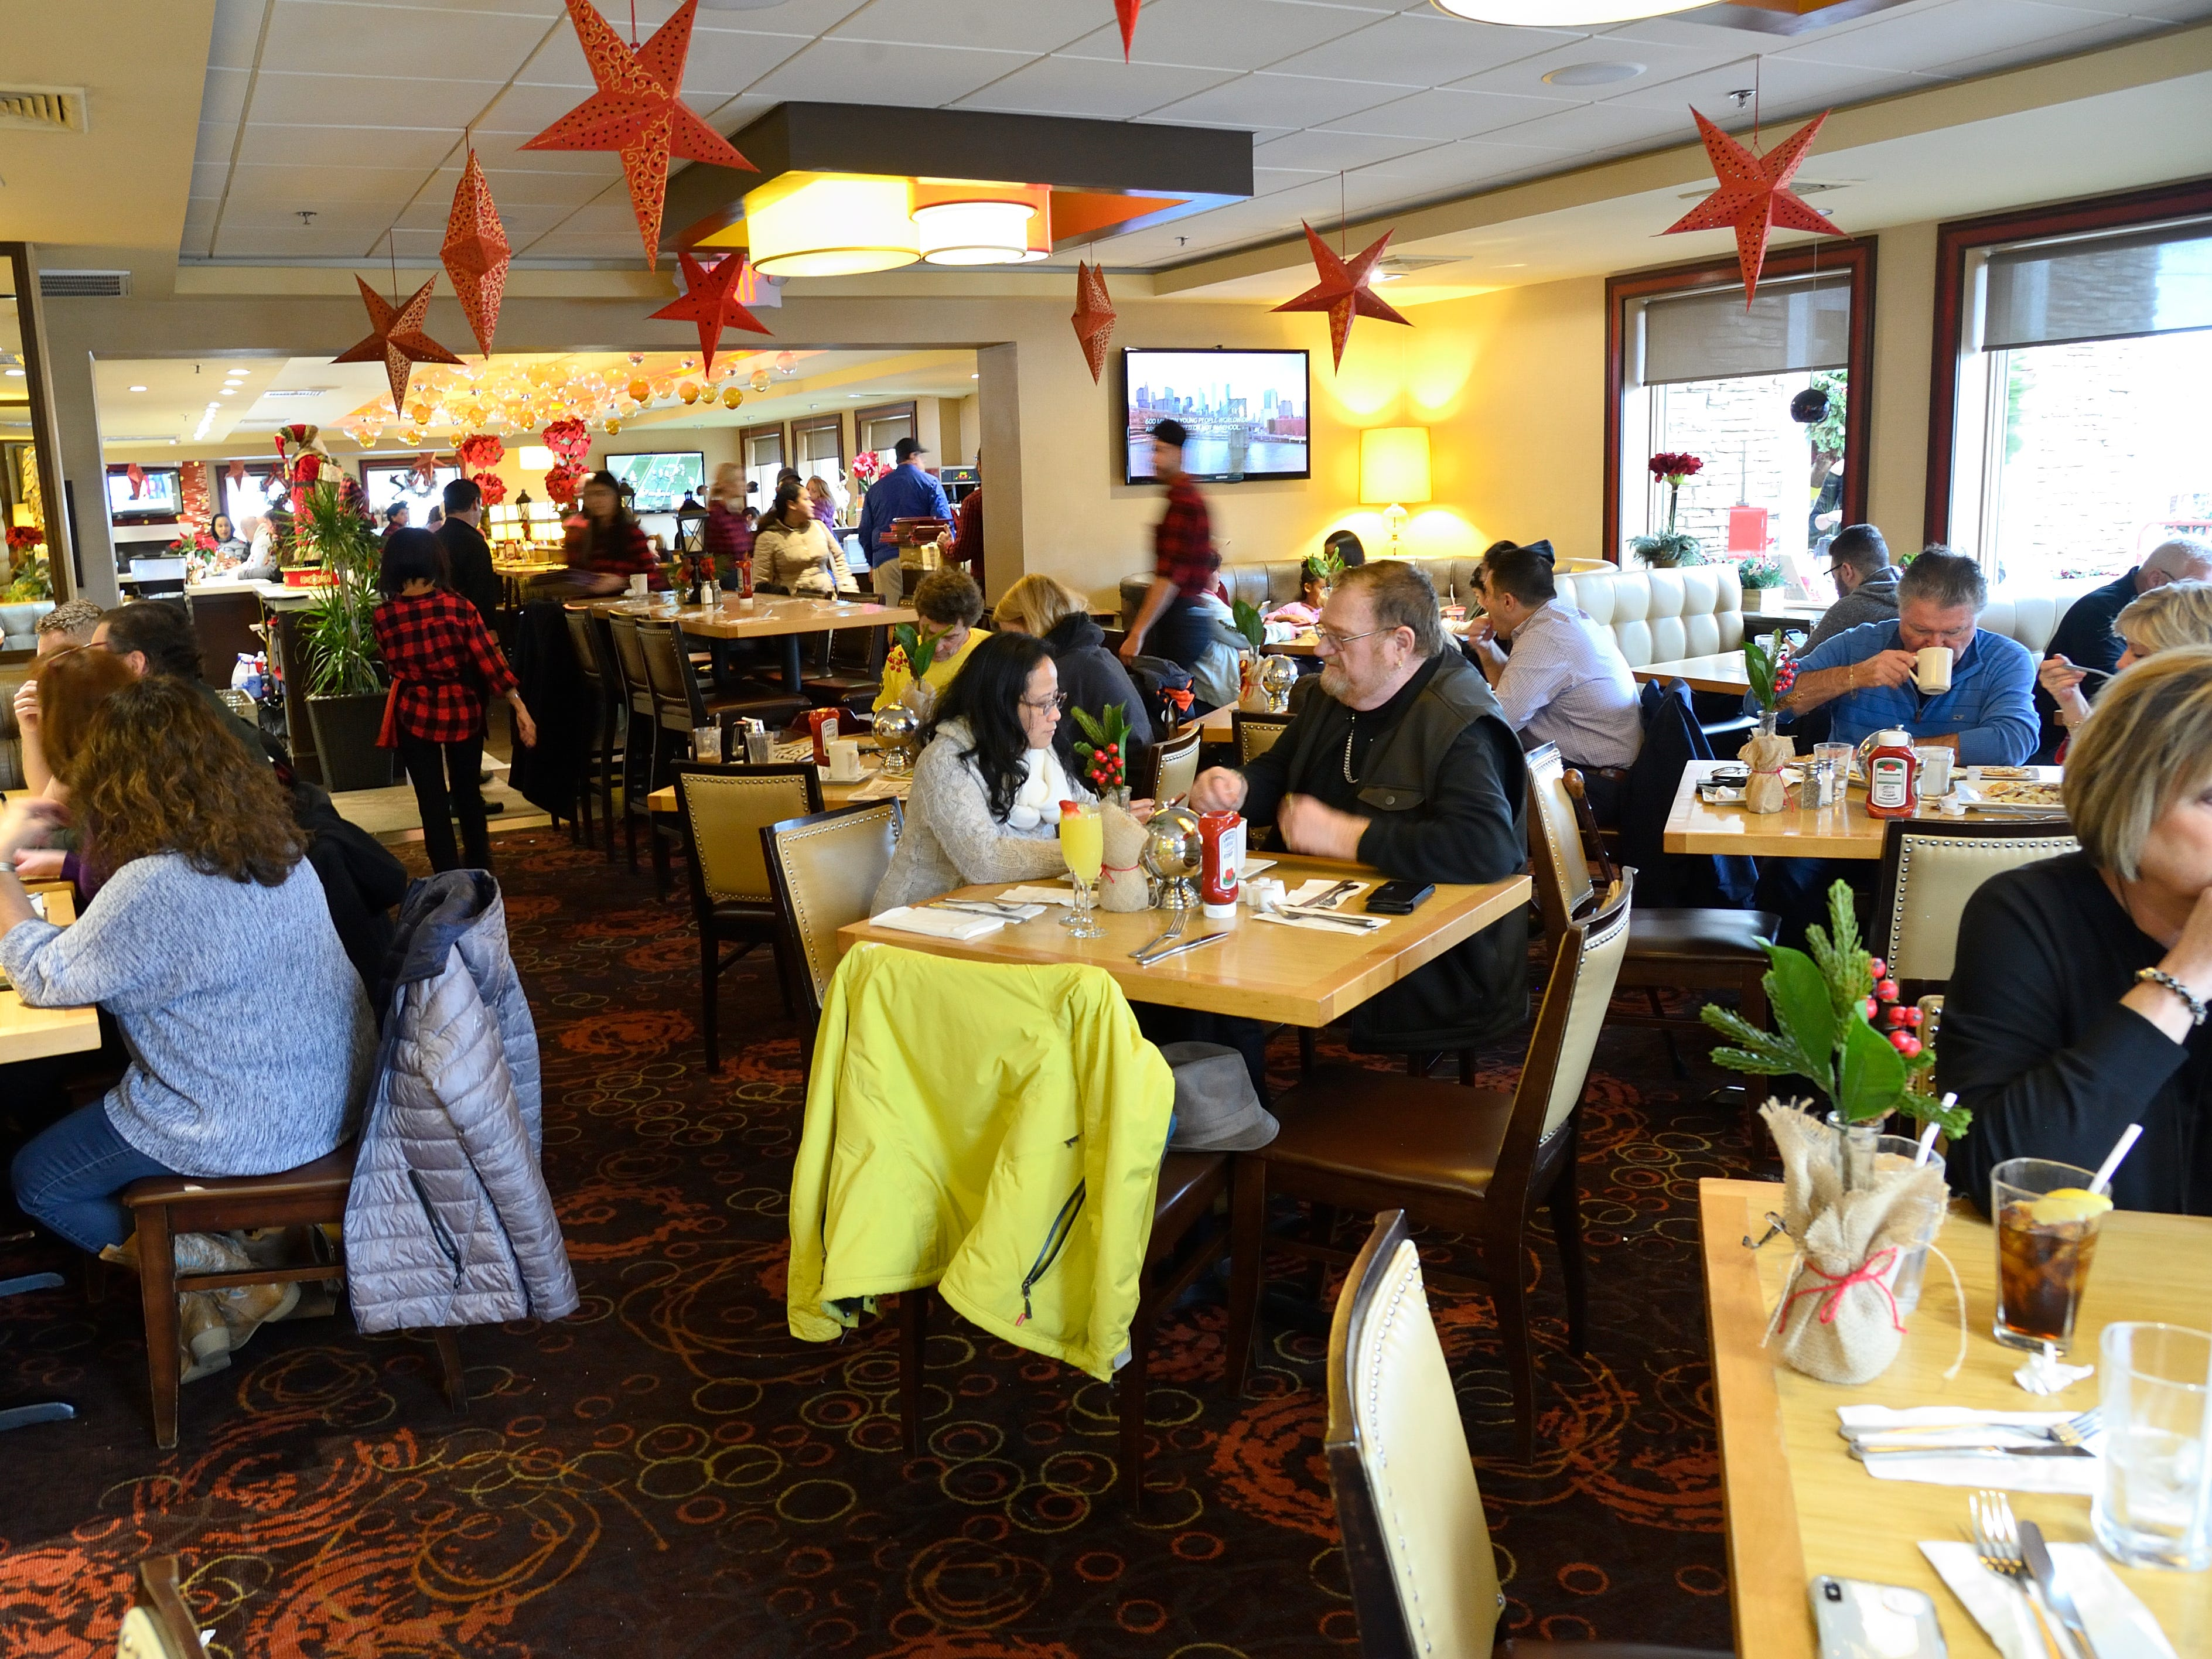 Holiday decorations on display at the Candlewyck Diner in East Rutherford on Saturday, Dec. 15, 2018